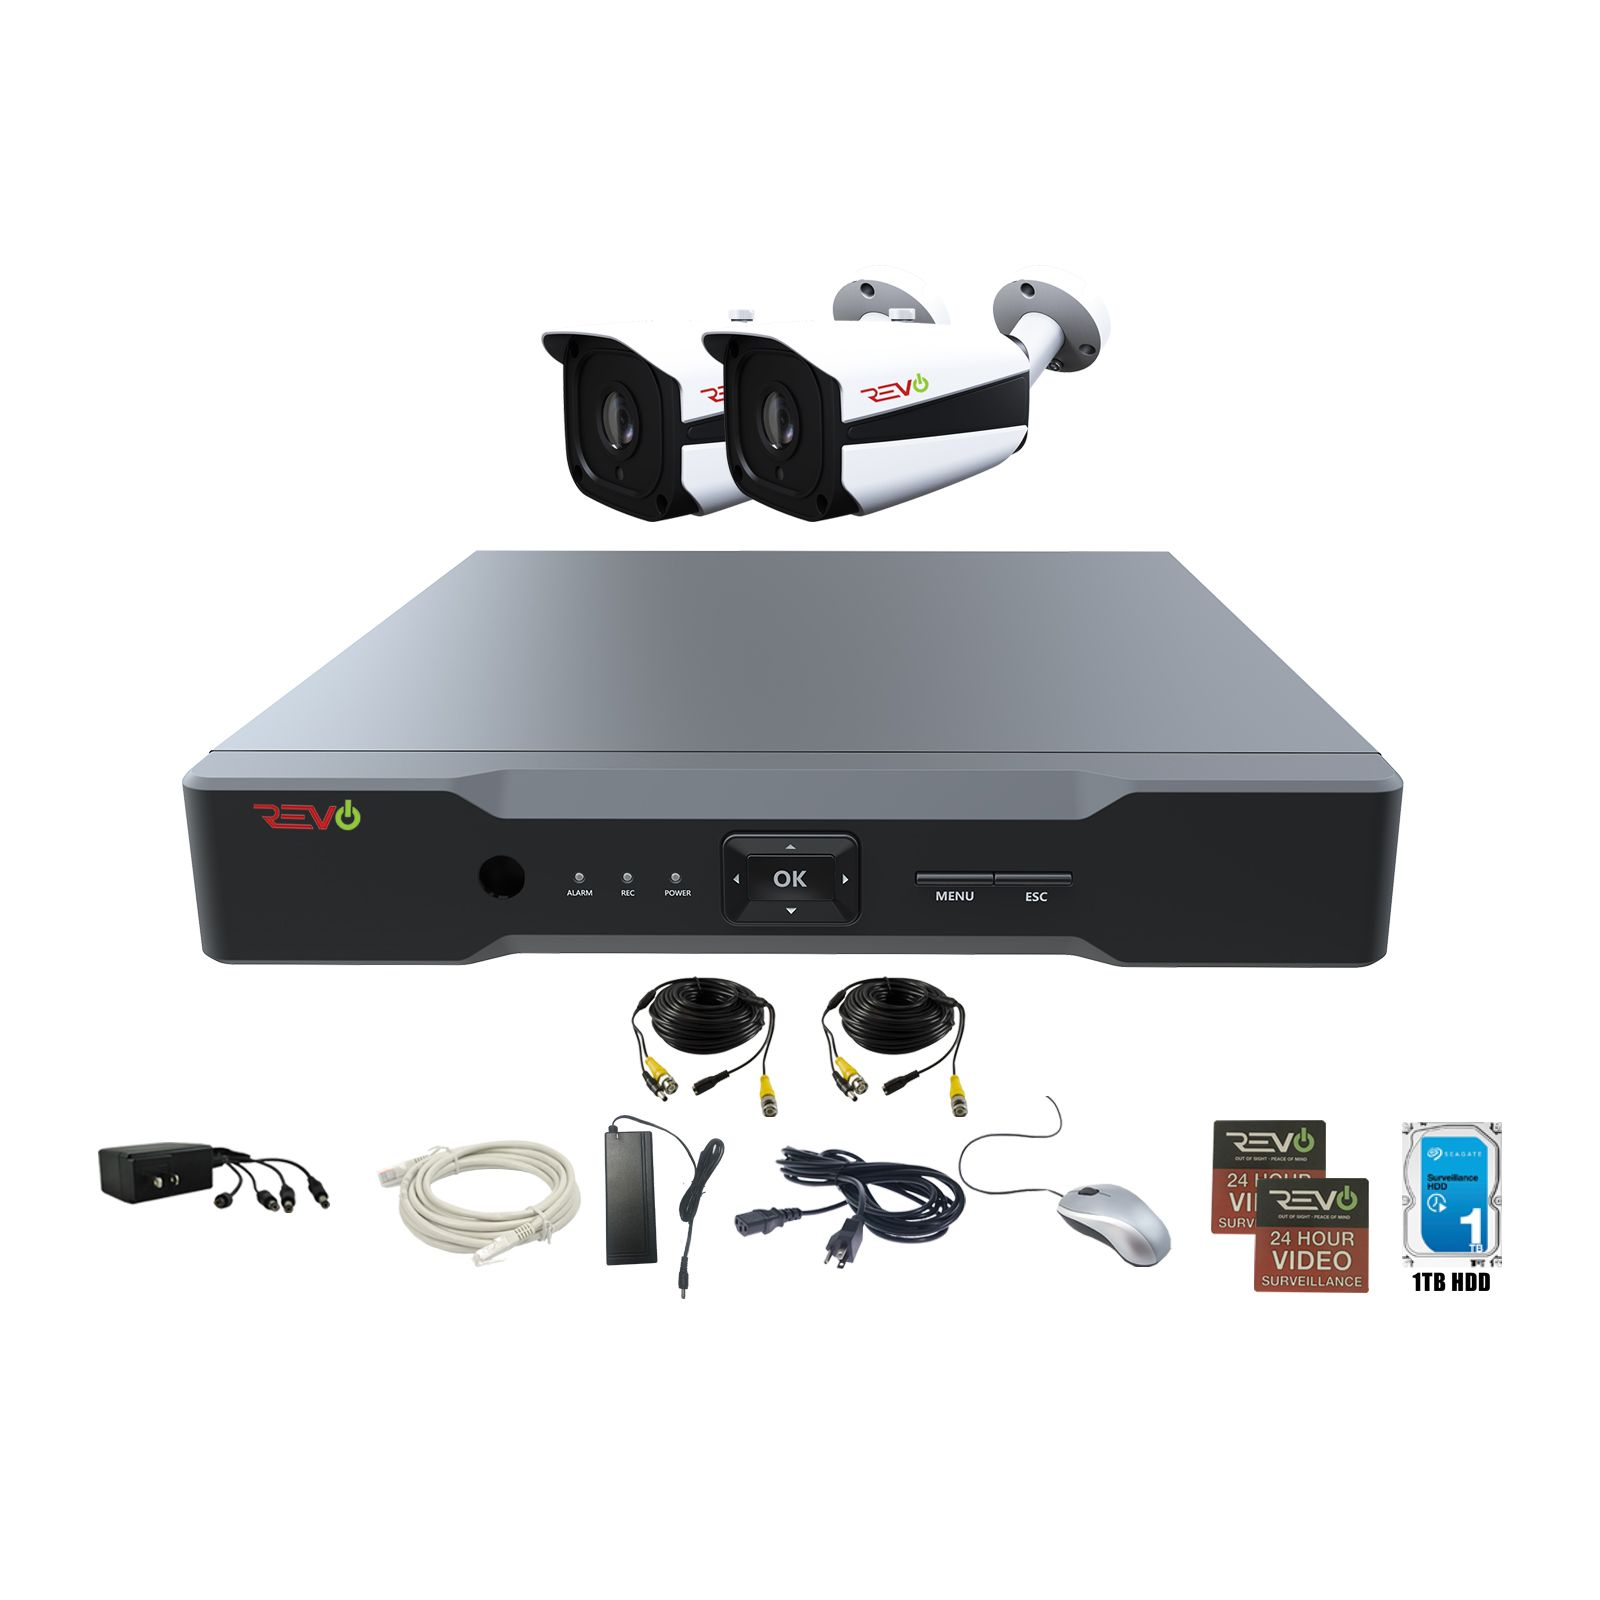 RevoAmerica AeroHD 4 Ch. 5MP Video Security System with 2 Indoor/Outdoor Bullet Cameras